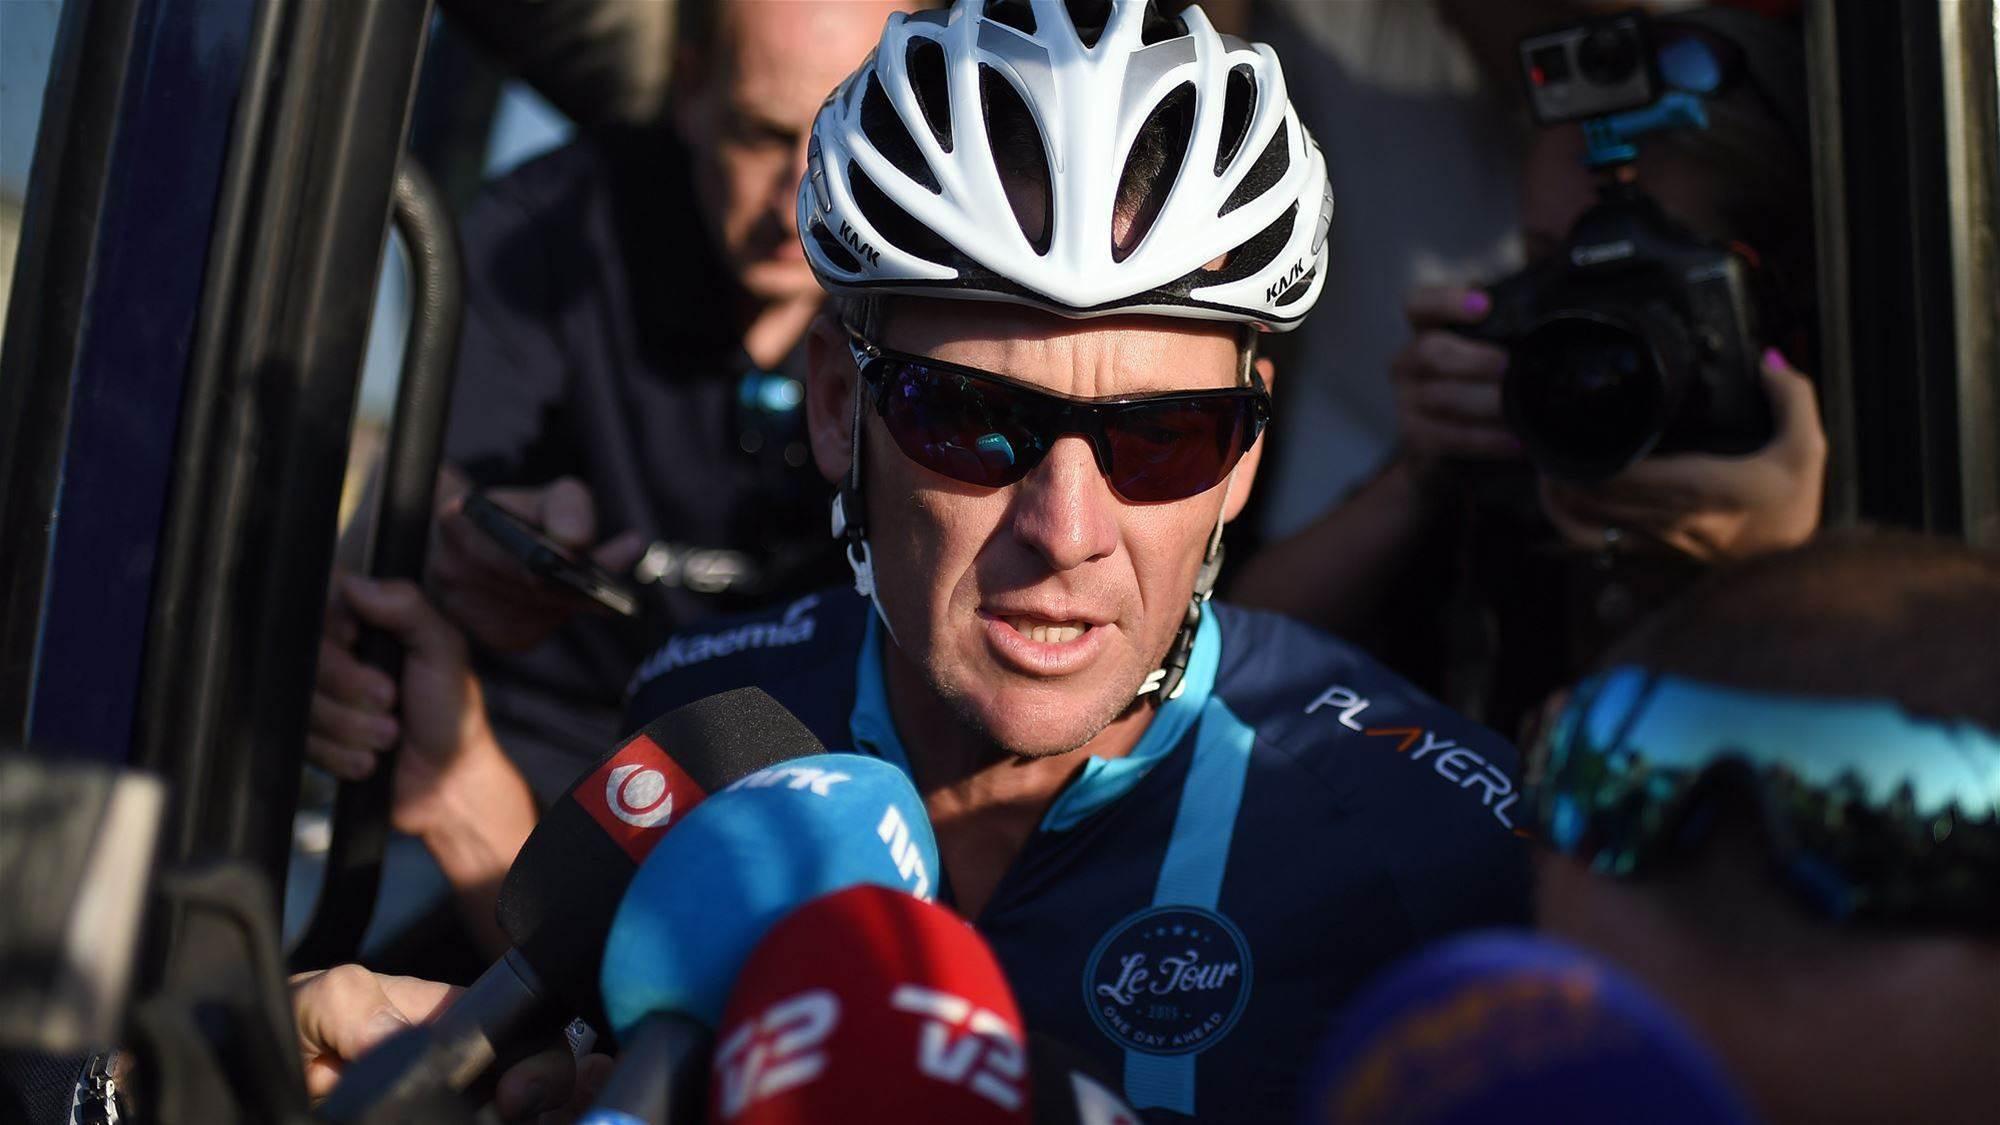 US Government sues Armstrong for $131 million